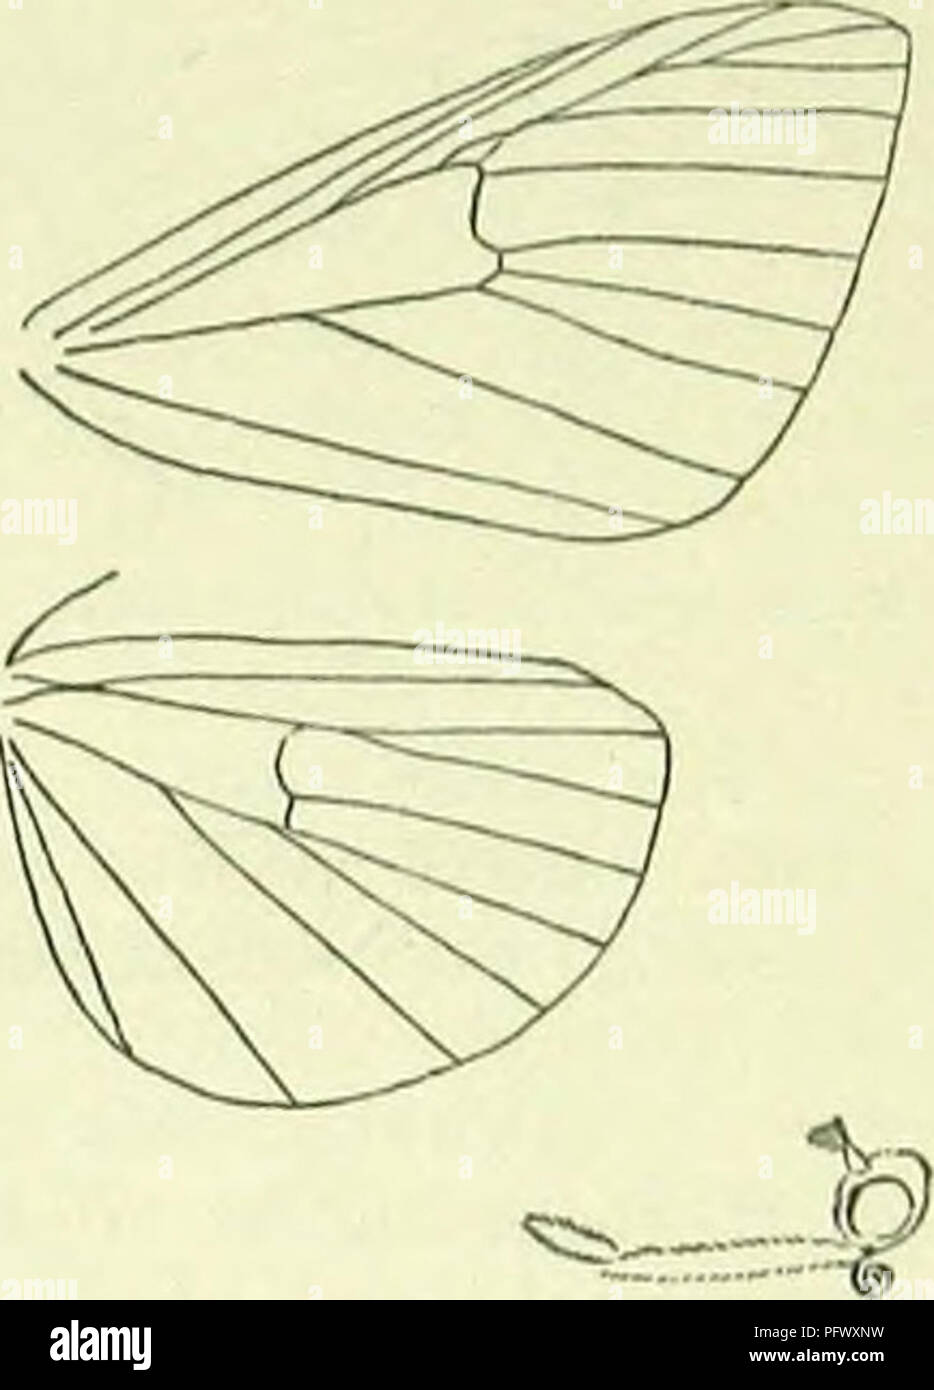 . A handbook of British lepidoptera. Lepidoptera. HERMINIA] l'LUSIADAE black discal dot. Hindwings fuscous-whitish, terminally browiiish-tiuged ; a grey discal dot. S. England to Somerset and Lincoln, in marshy places, local; G. Europe, N. Asia; 7. Larva pale grey-brown, yellowish-freckled ; dorsal line darker, pale-edged; subdorsal and spiracular paler: on Salix, Carex, Luzula, etc.; 9-5. 2. H. barbalis, CI. 27-31 mm. Antennal pectinations of cj very short, terminating in long- bristles. Forewings pale greyish-ochreous irrorated with dark brown; first and second lines cloudy dark yellowish- b - Stock Image